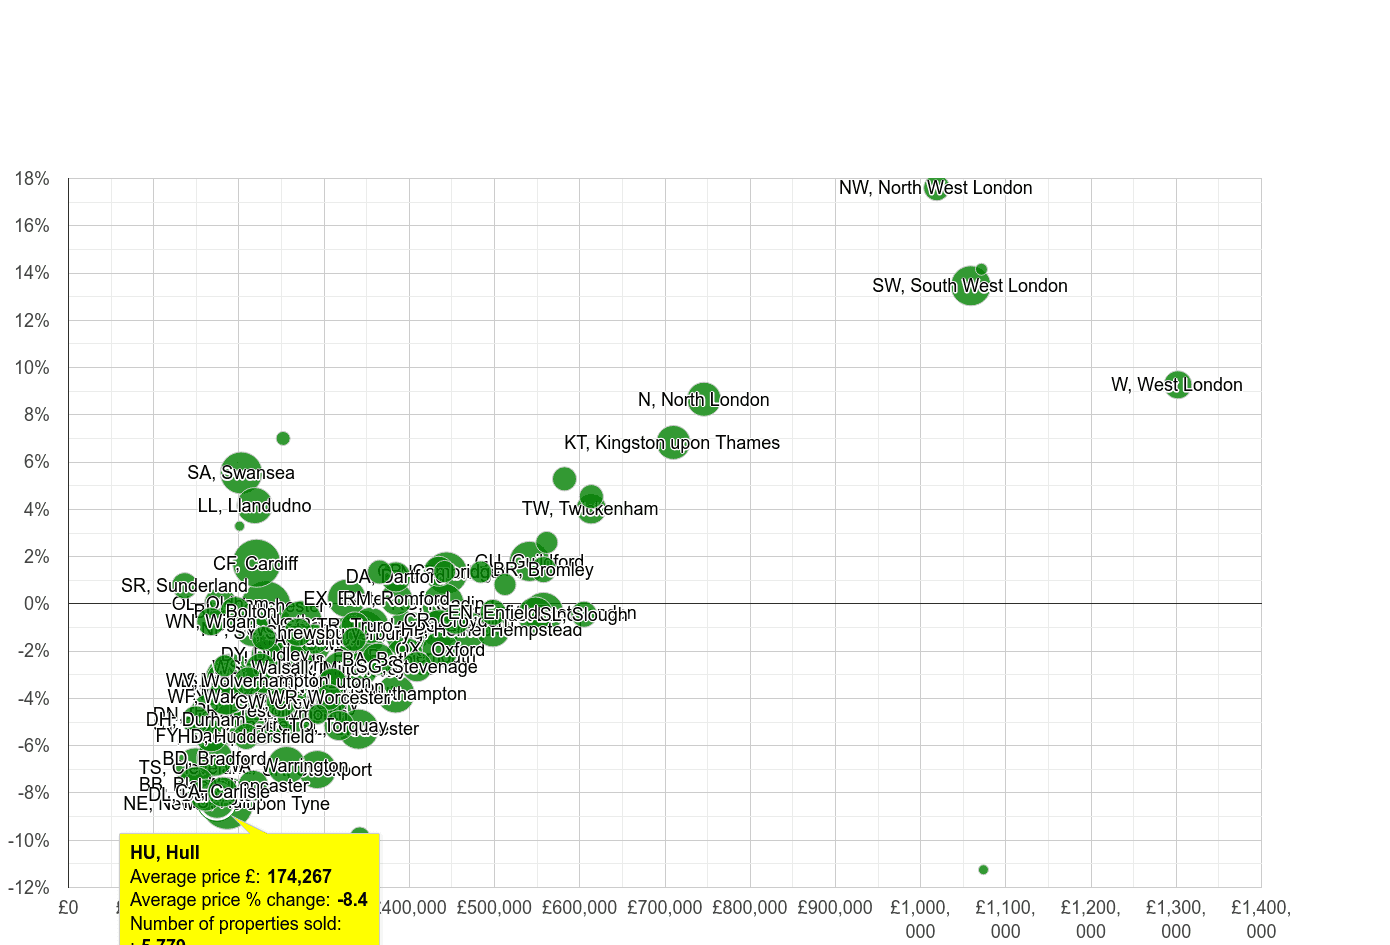 Hull house prices compared to other areas